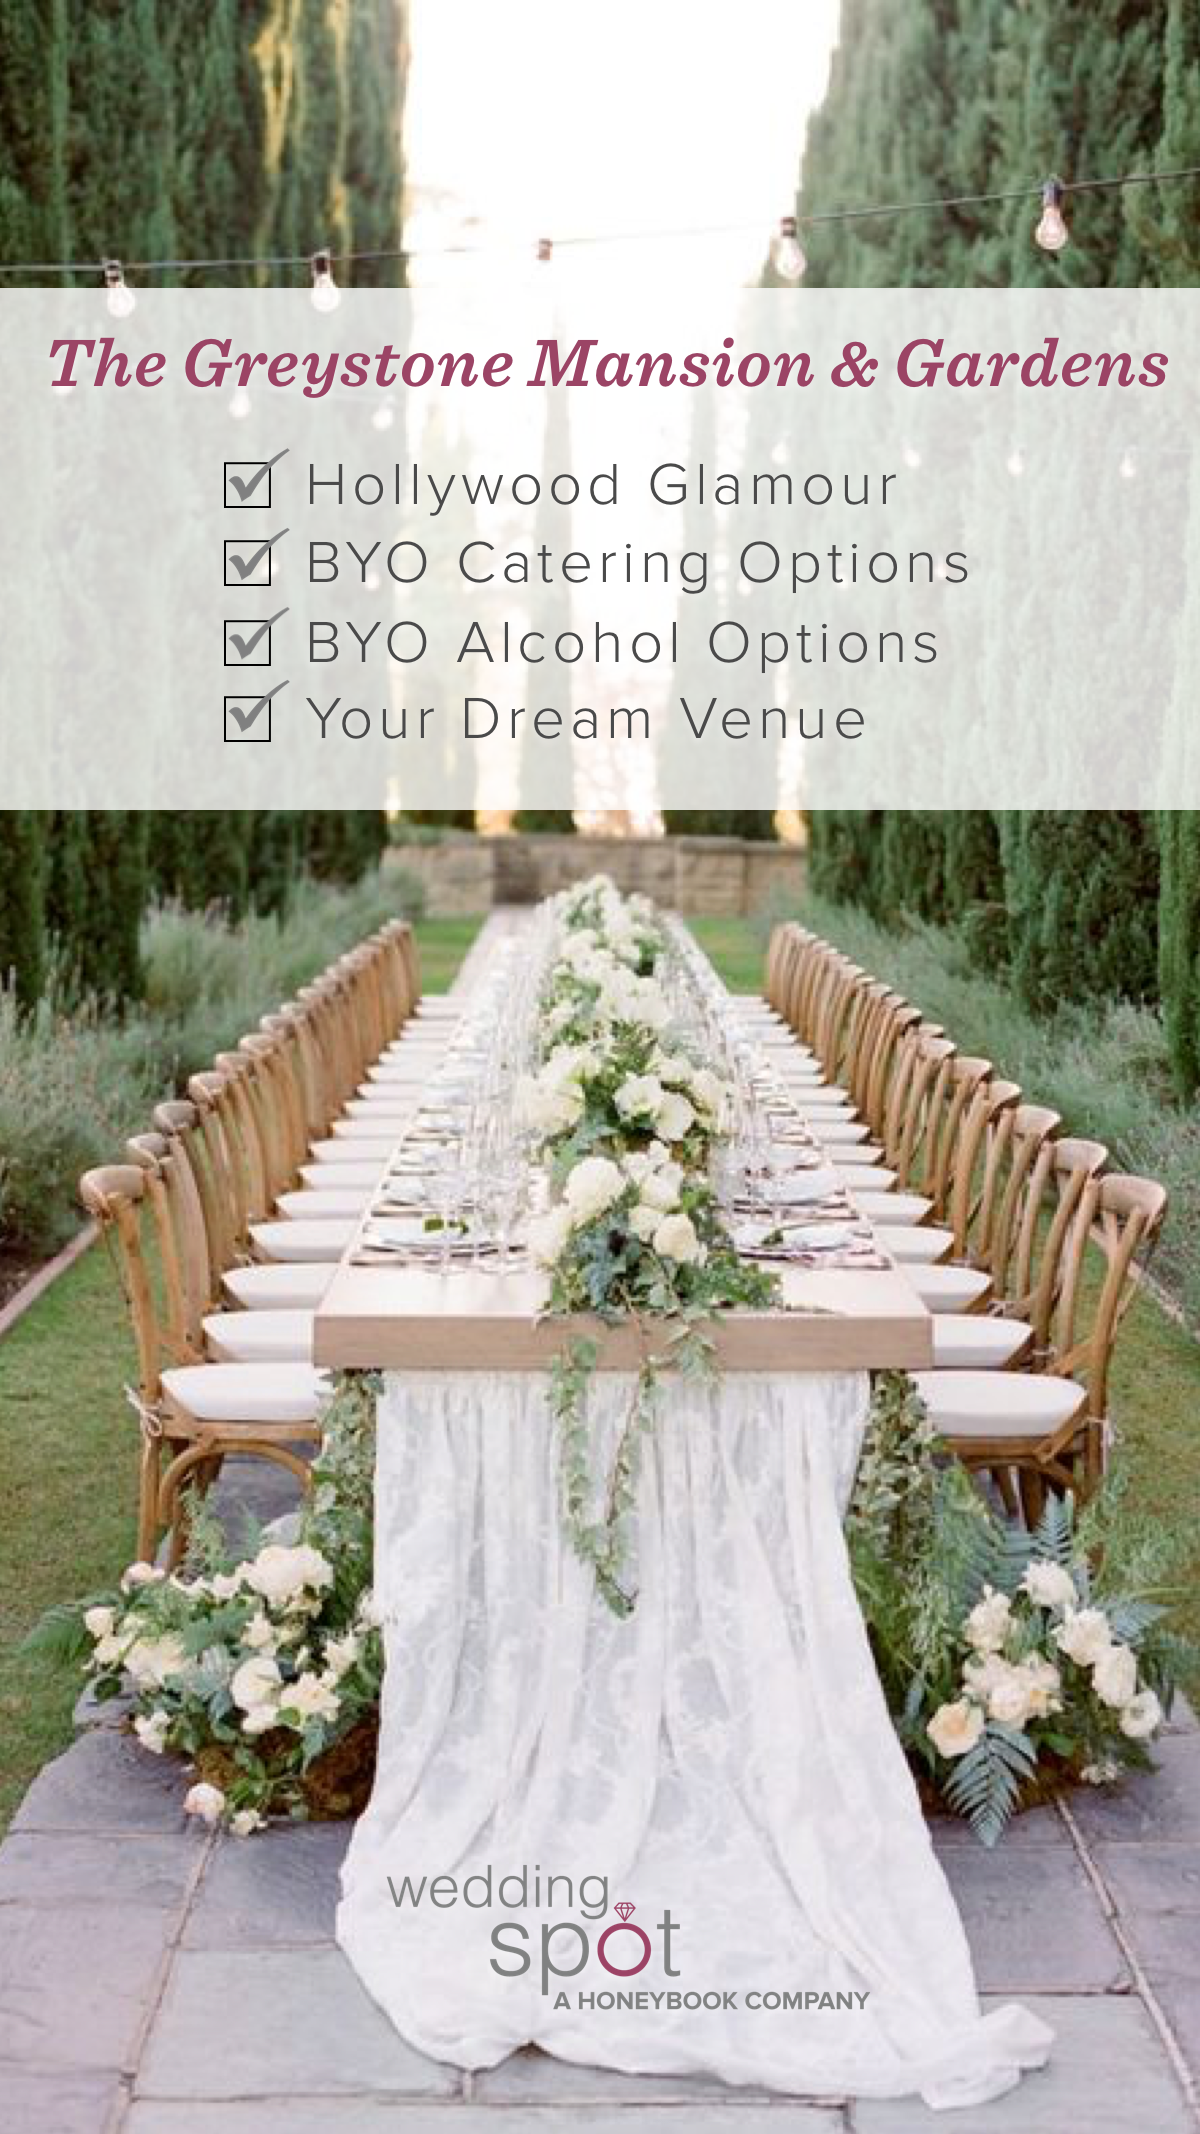 Build & price out your dream wedding at the Greystone